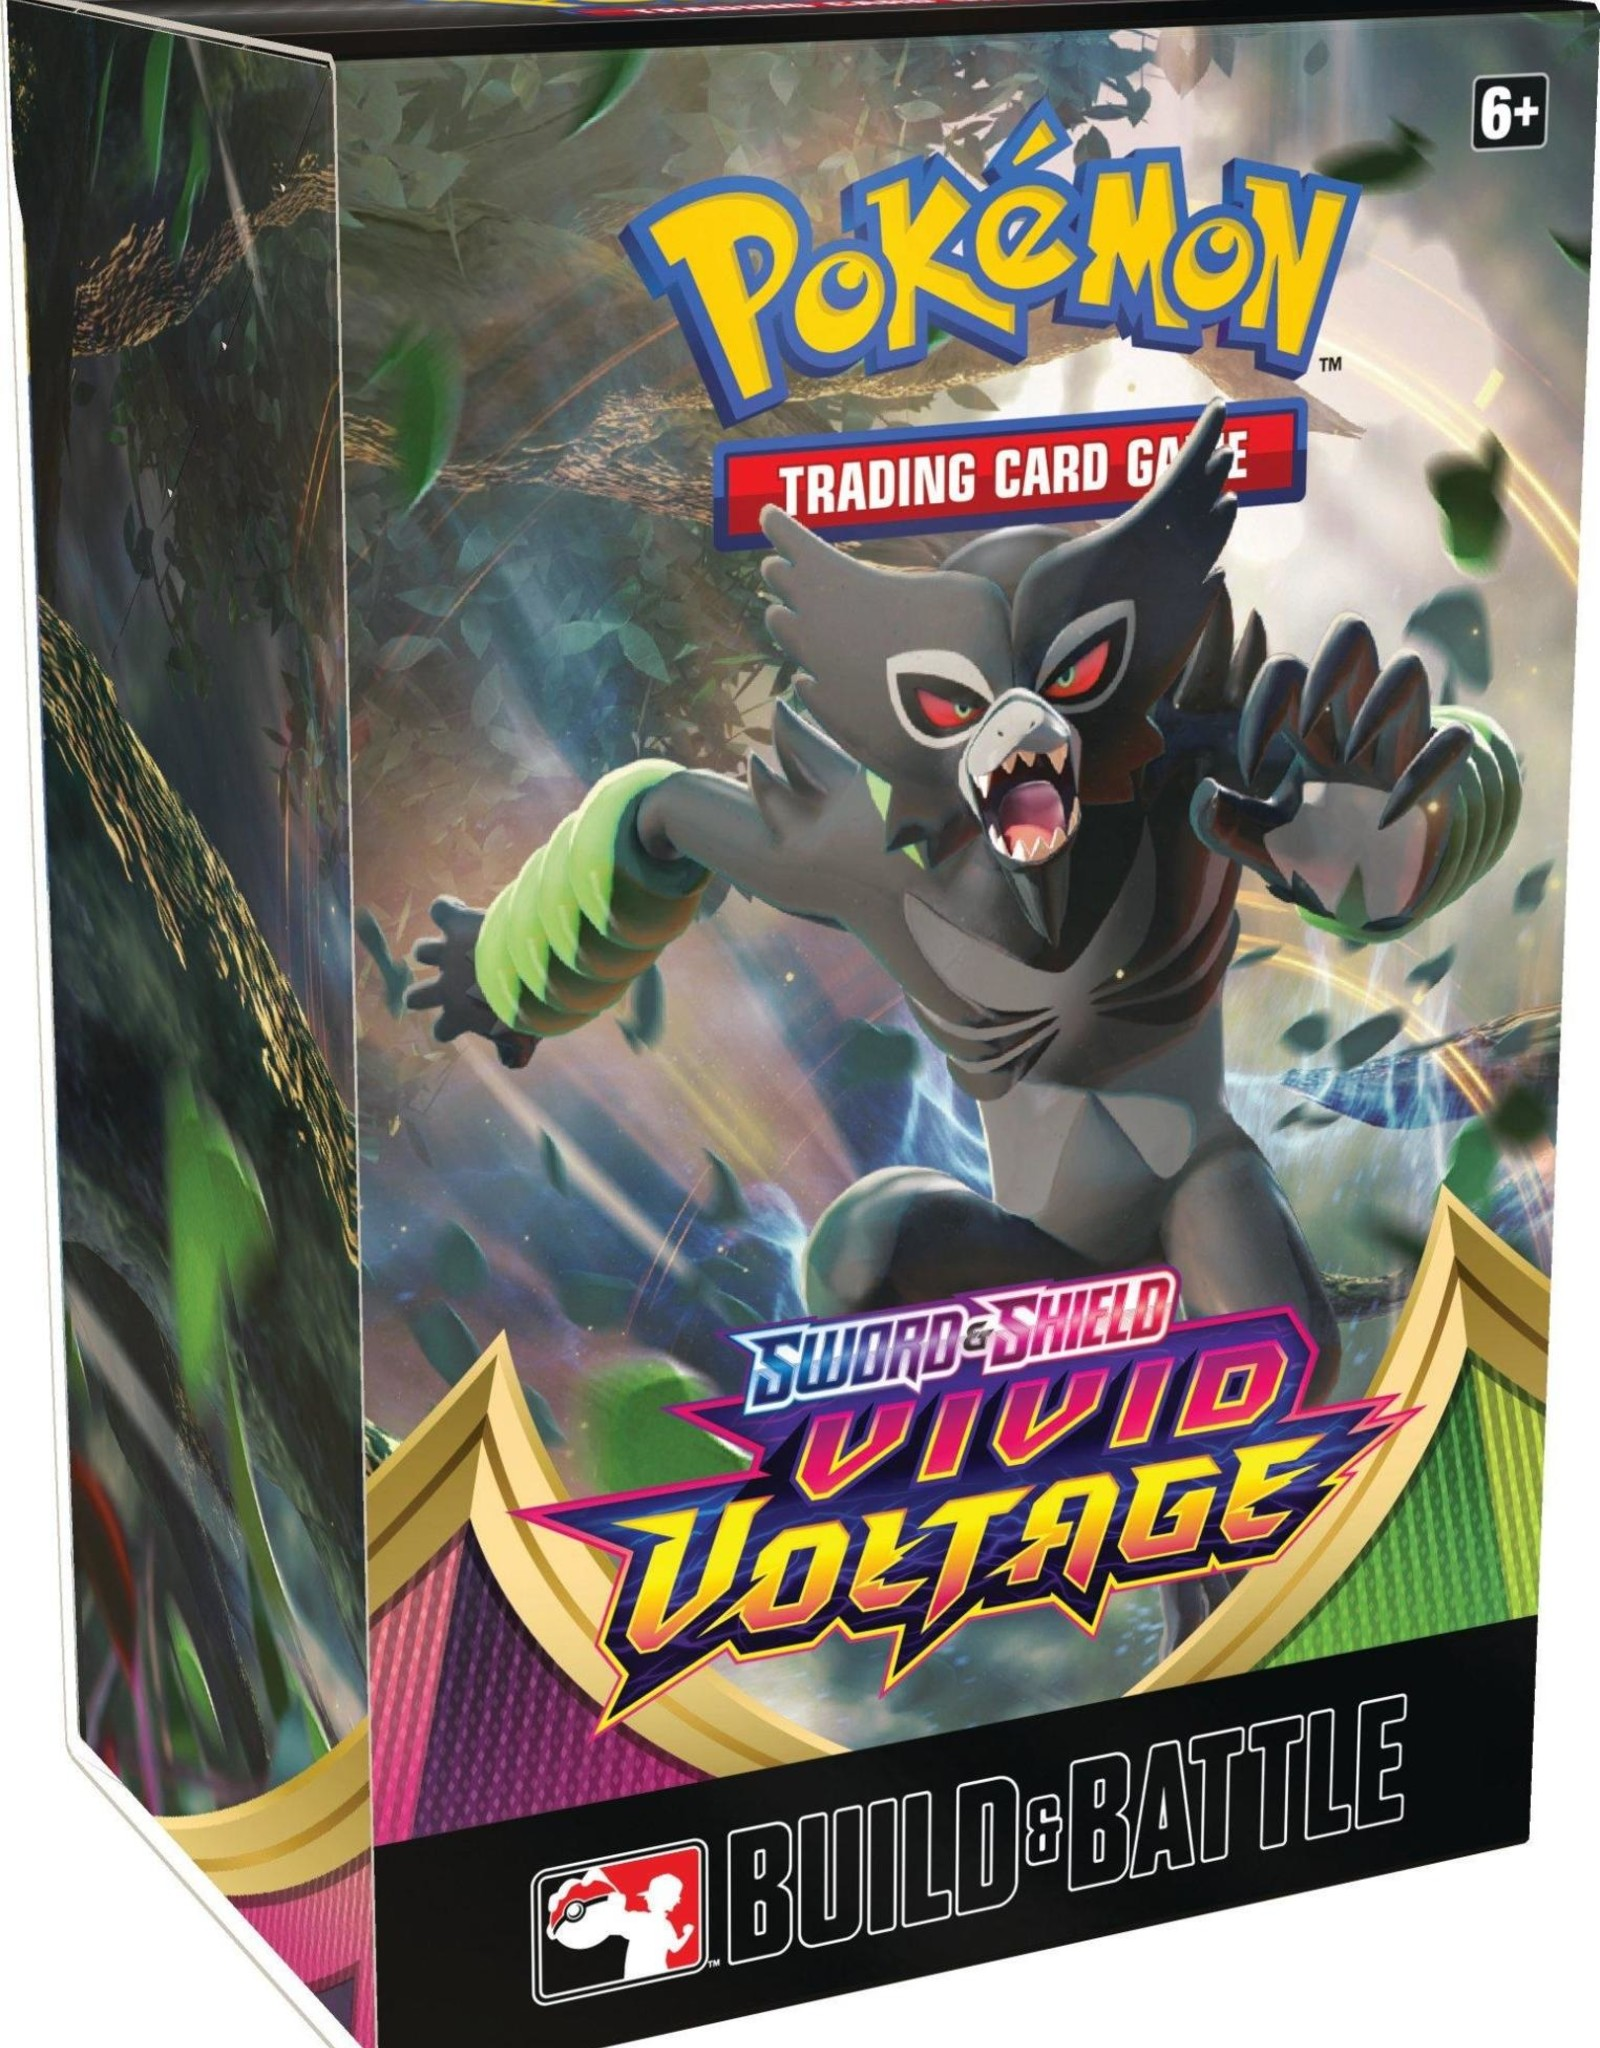 Pokemon Pokémon TCG: Sword & Shield - Vivid Voltage Prerelease